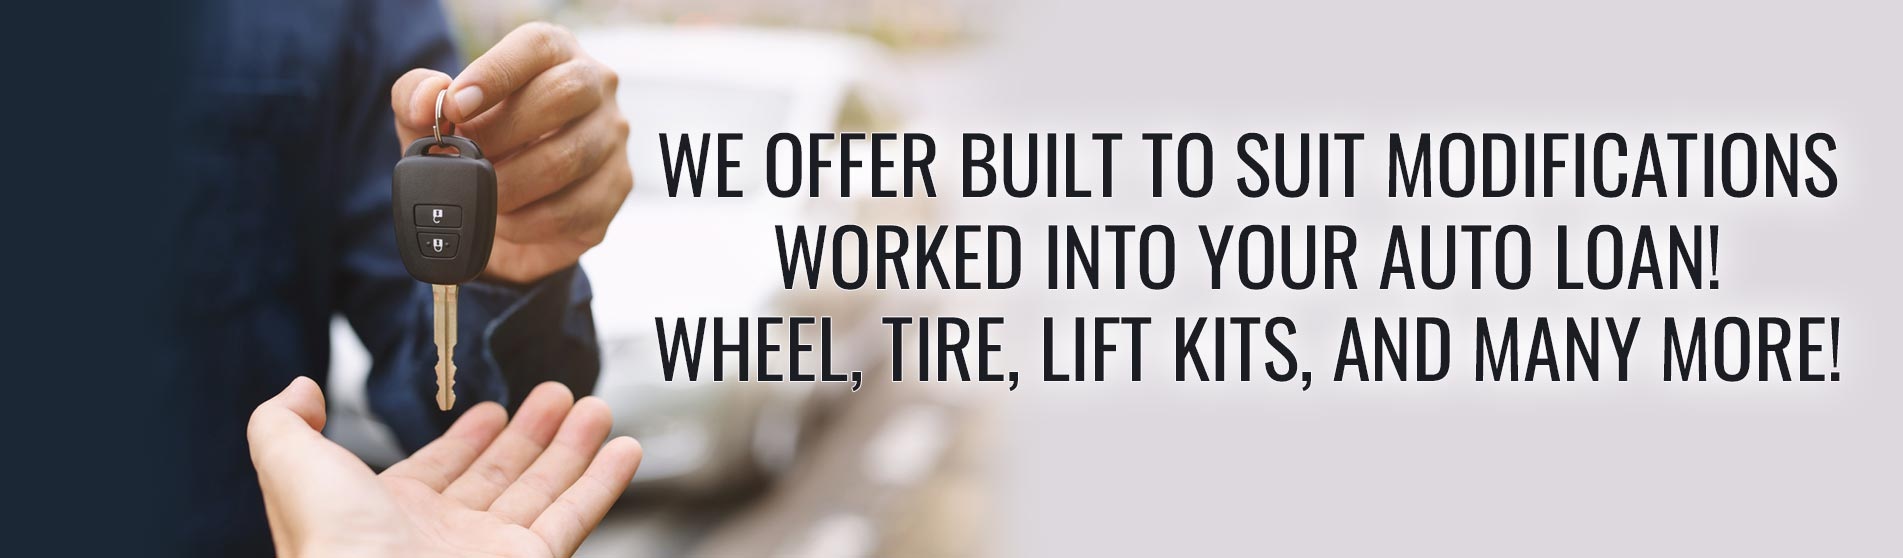 We offer built to suit modifications worked into your auto loan! Wheel, tire, lift kits, and many more!